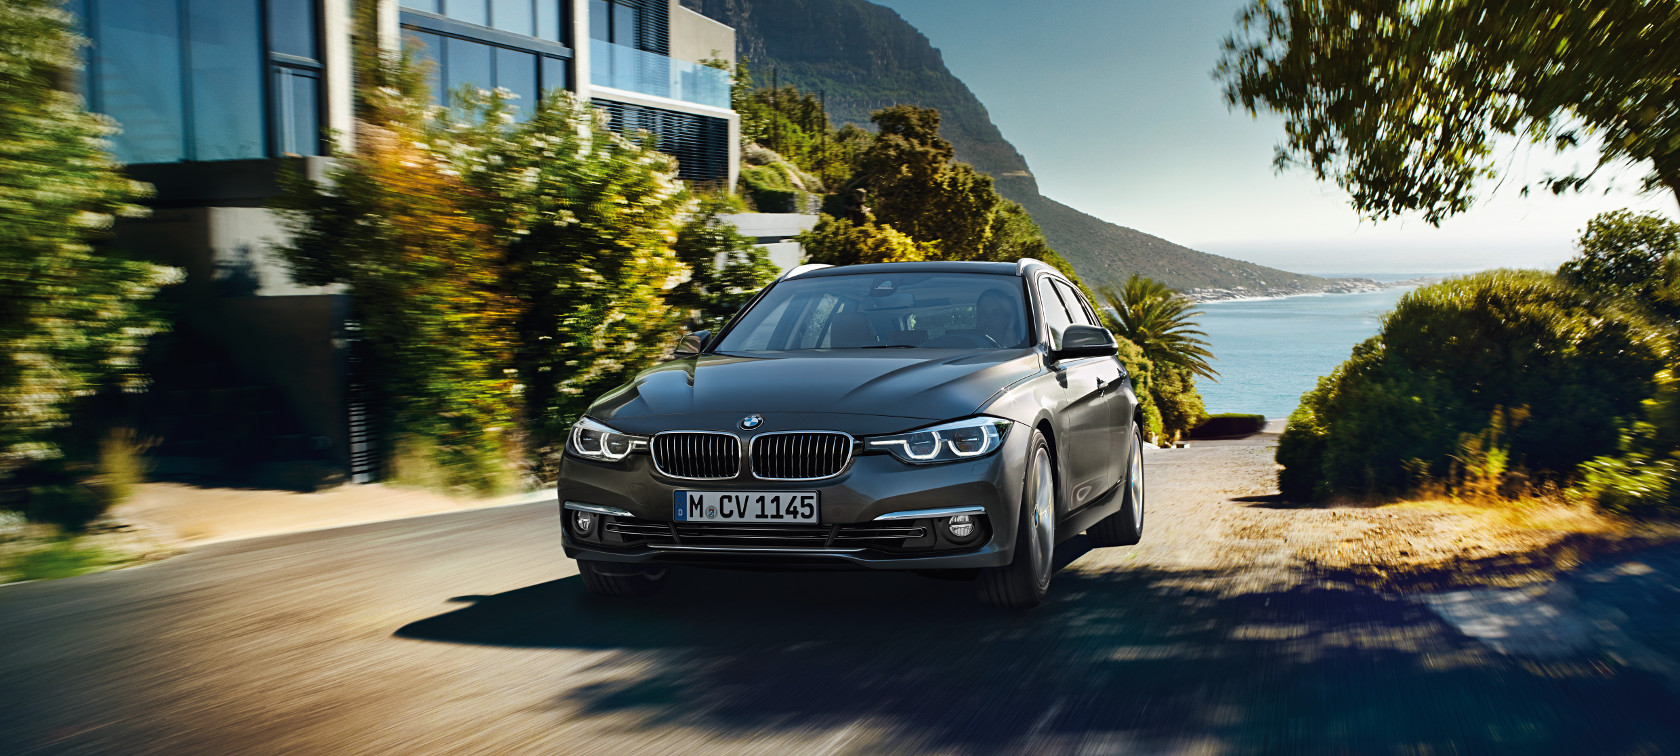 The BMW 3 Series Touring